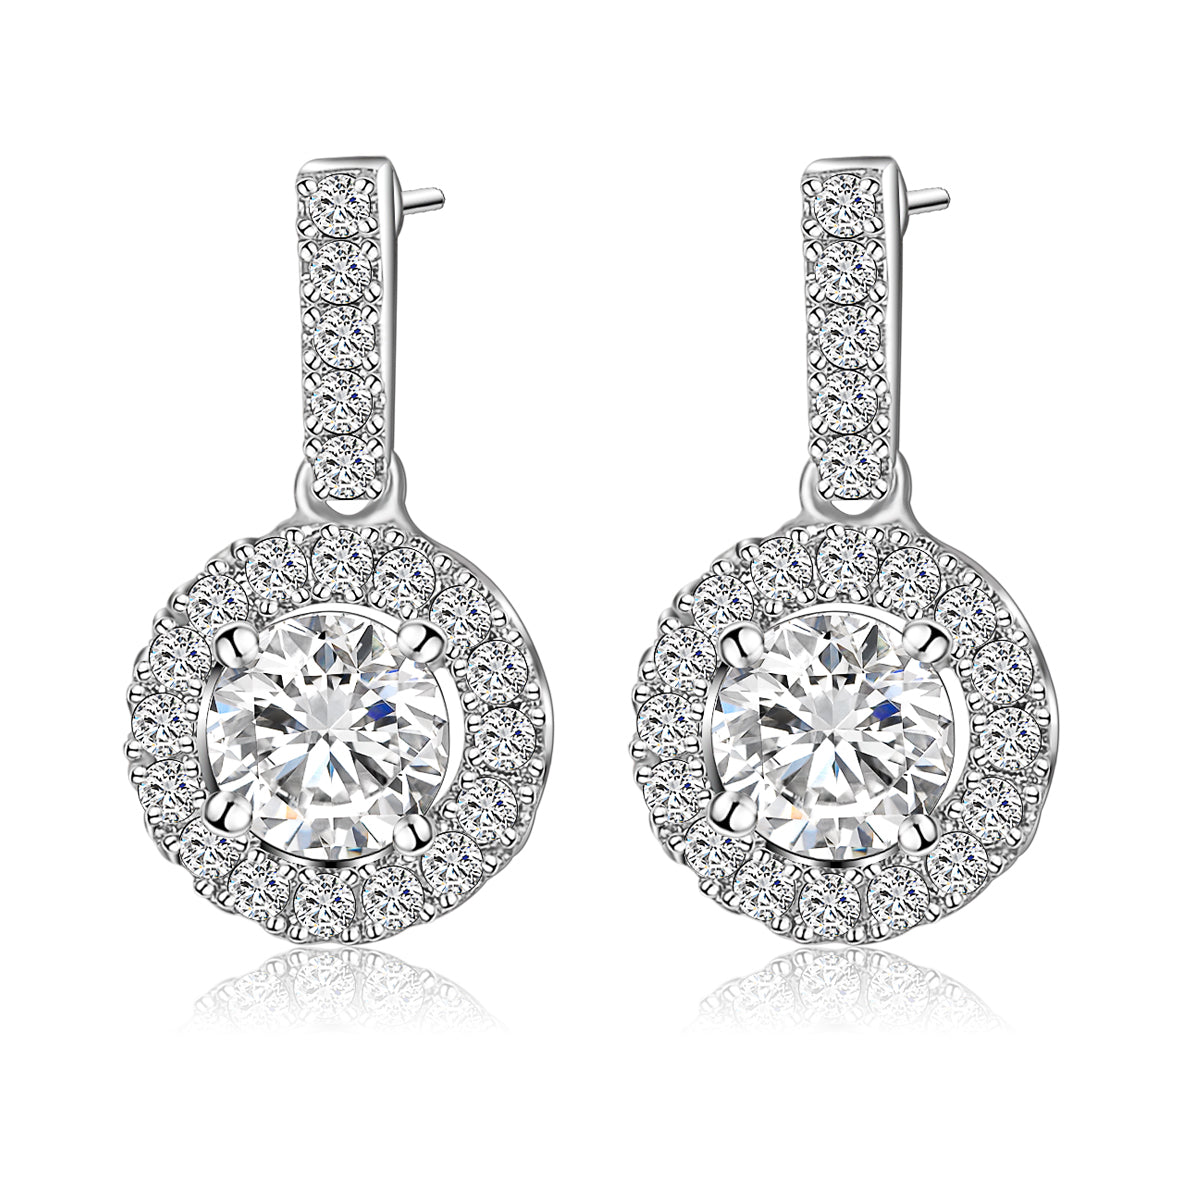 Benmani White Gold Platted Round Princess Halo Earrings